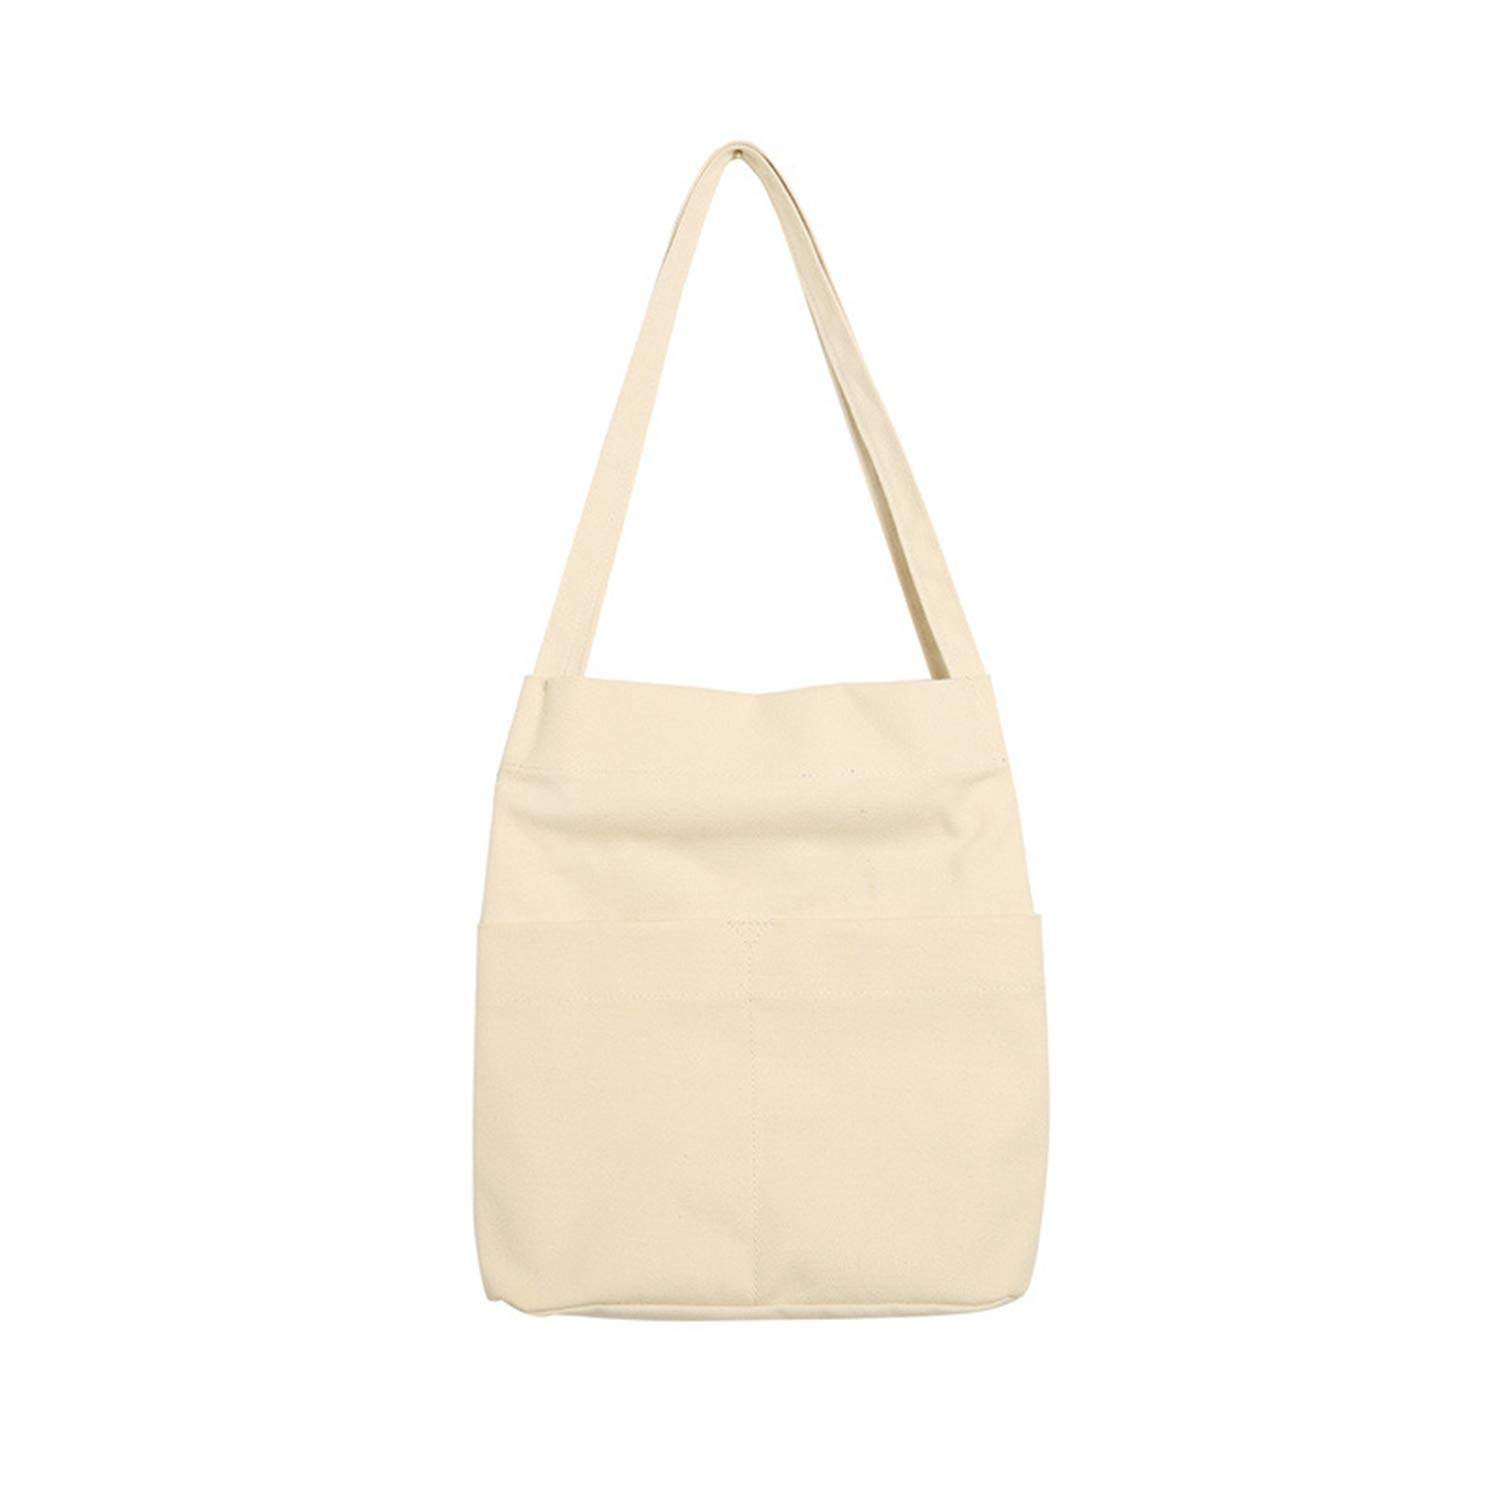 Road/&Cool Shoulder Bags Handbag Fashion Simple Womens Canvas Tote Bag Campus School Bag Hobo Commute Environmental Protection Shopping Leisure Beach Travel Tote 28/×12/×34cm